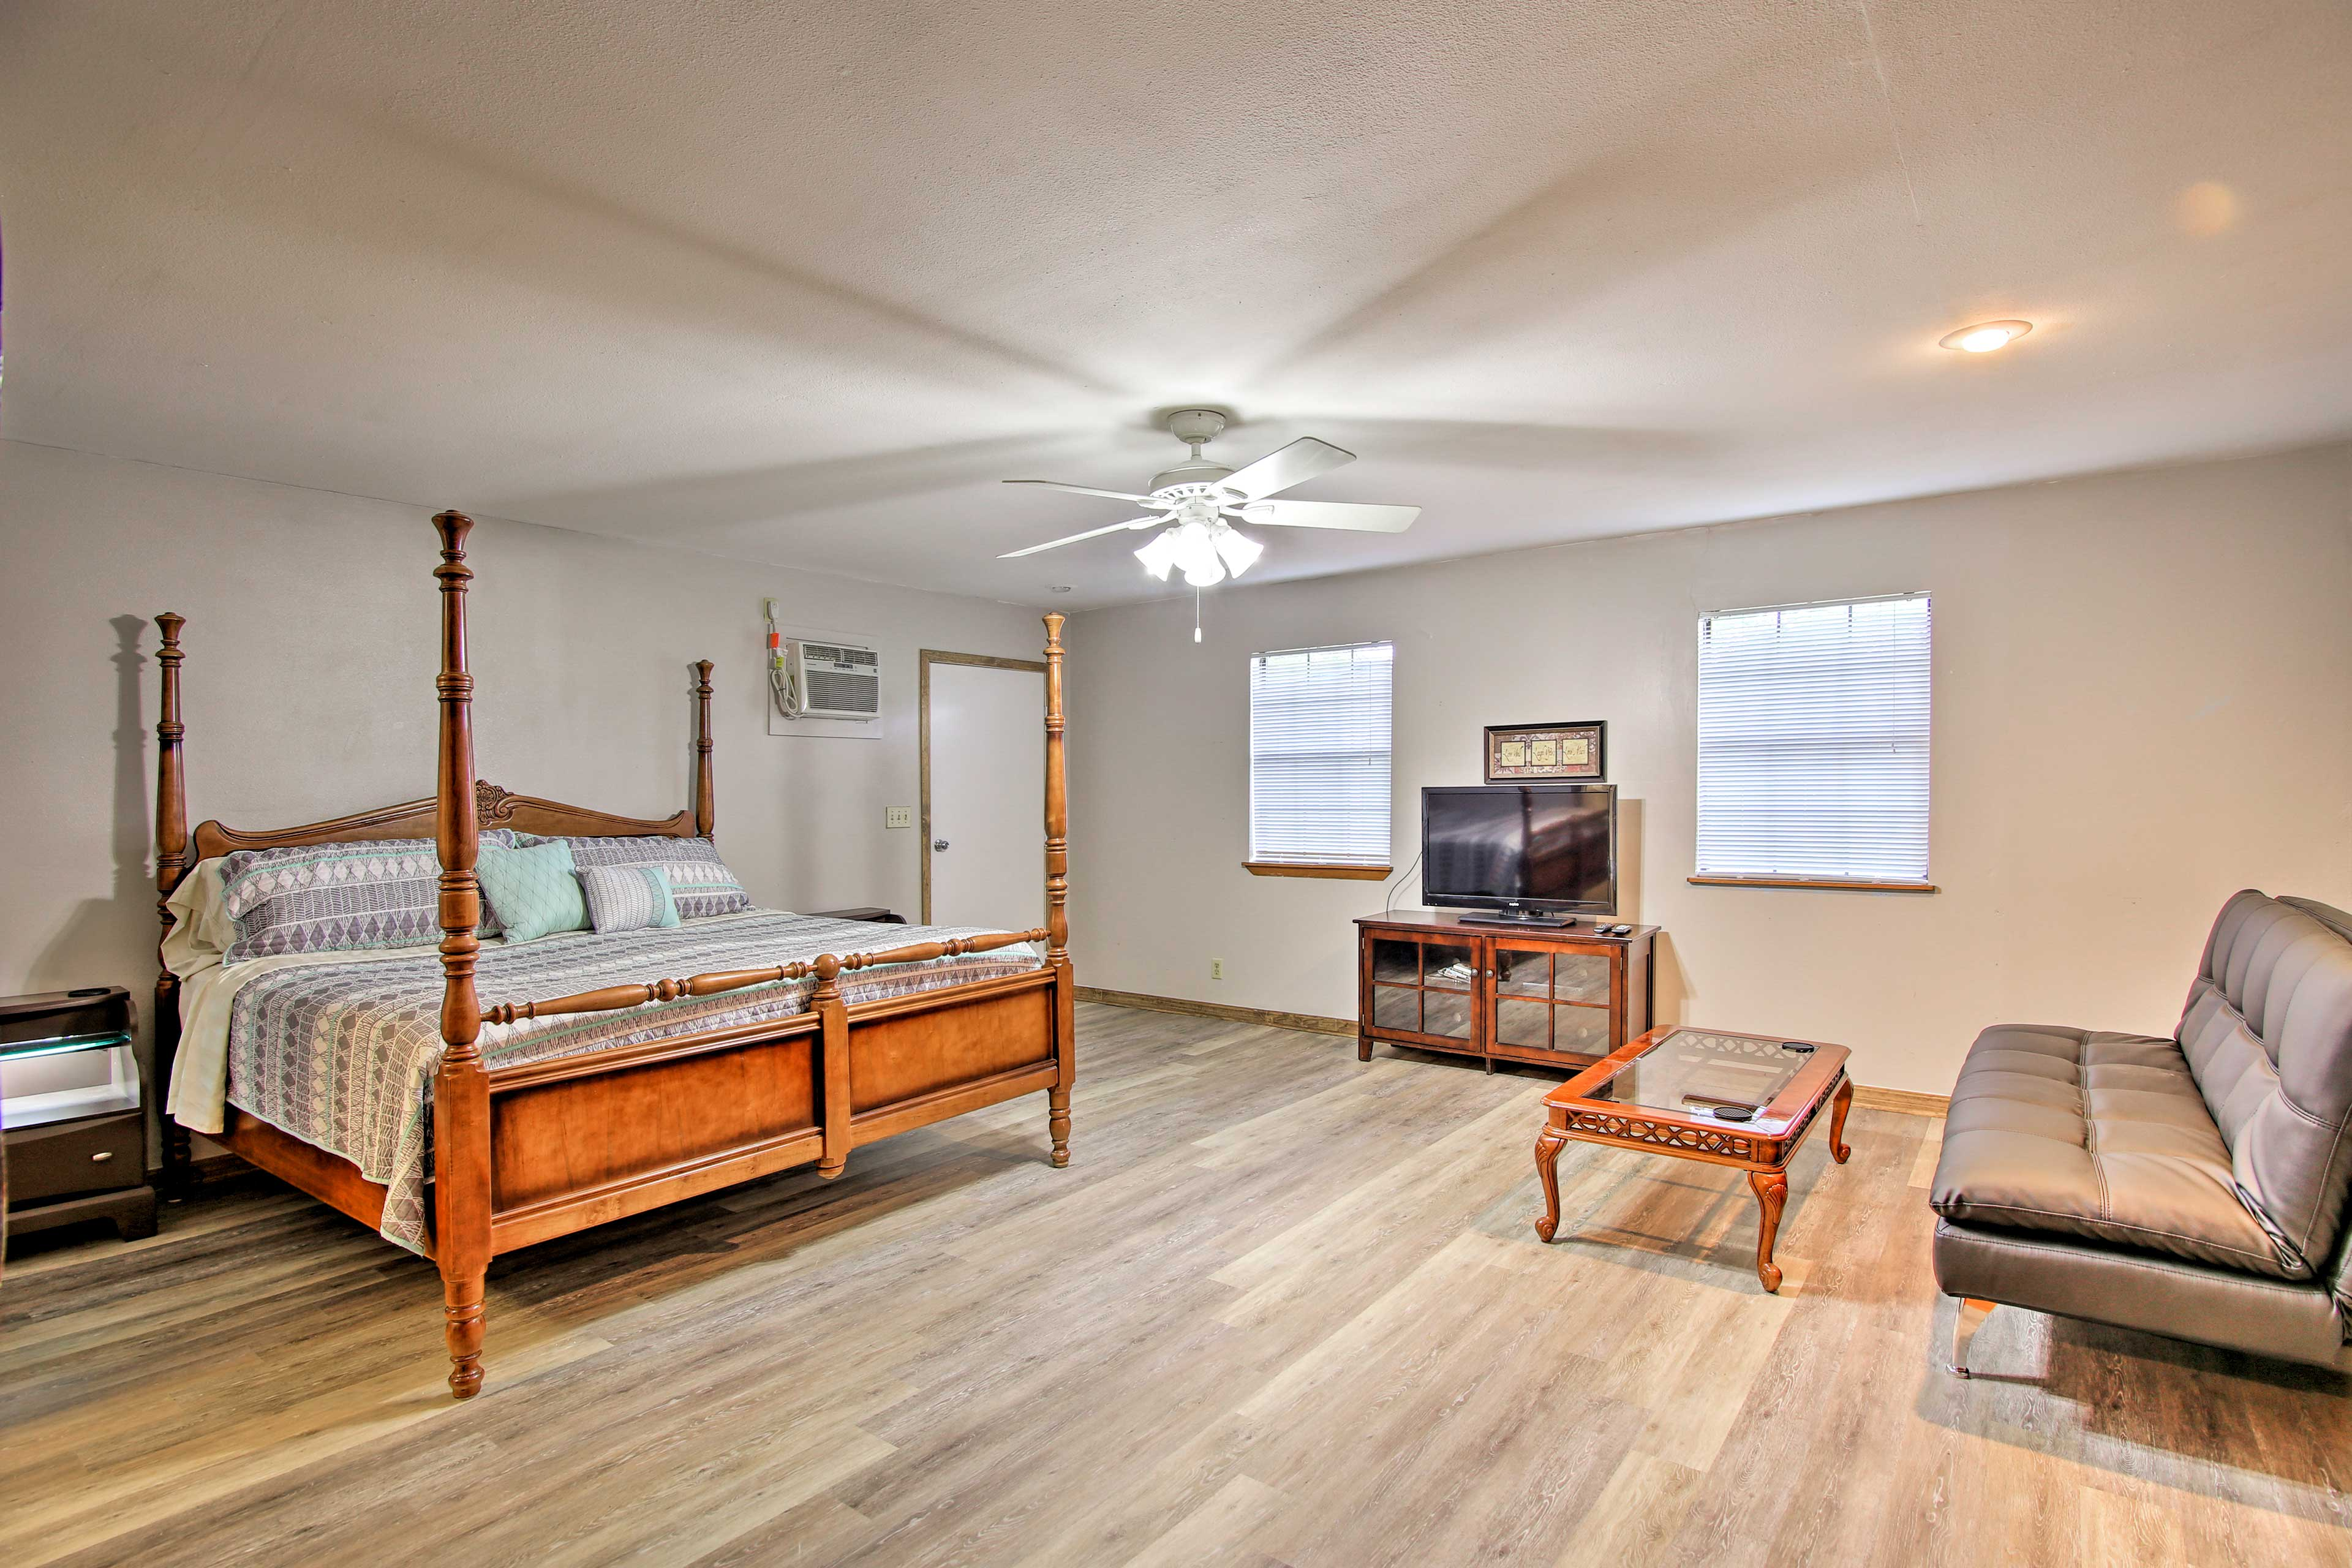 A plush king bed, flat-screen TV and futon furnish this massive bedroom.